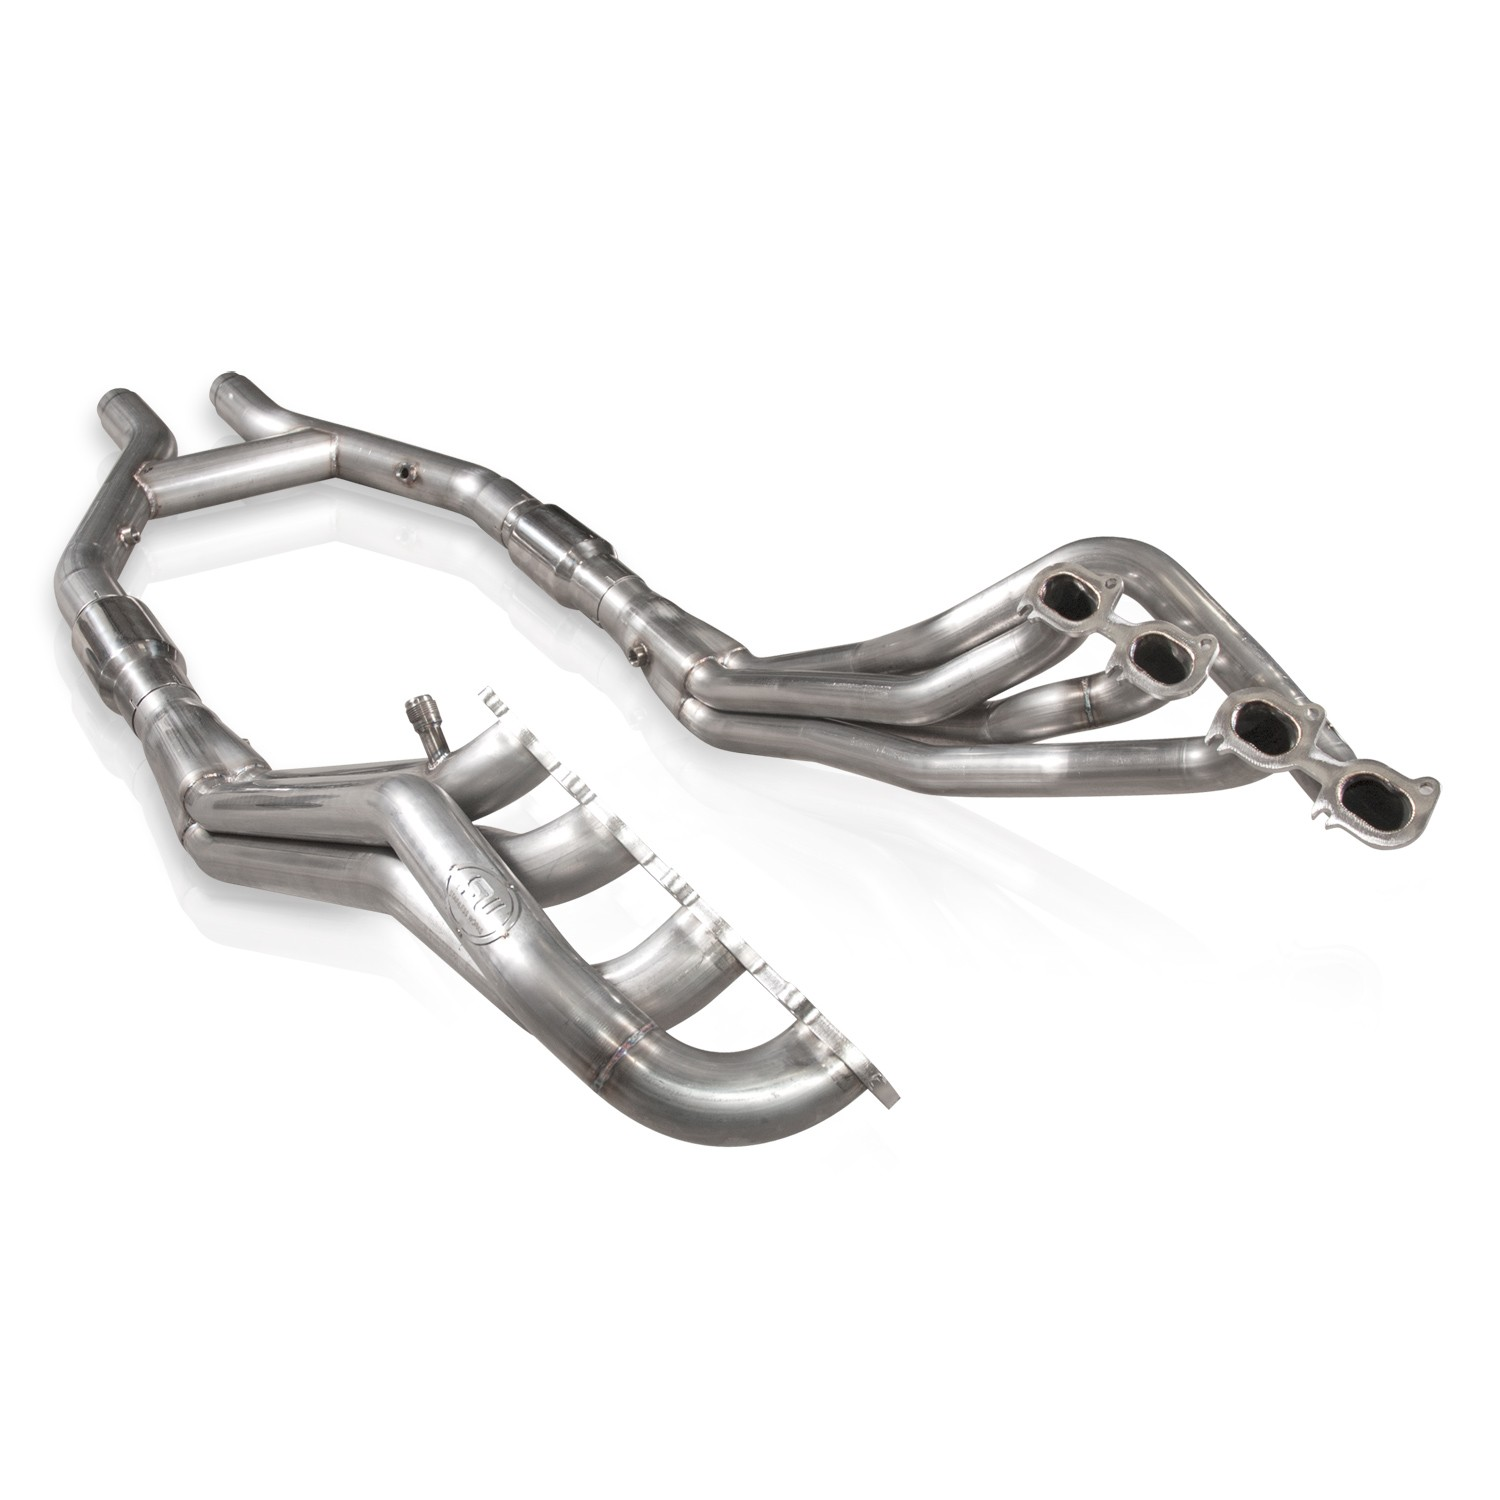 Stainless Works Shelby Gt500 Headers 1 7 8in Primaries High Flow Cats 3in H Pipe